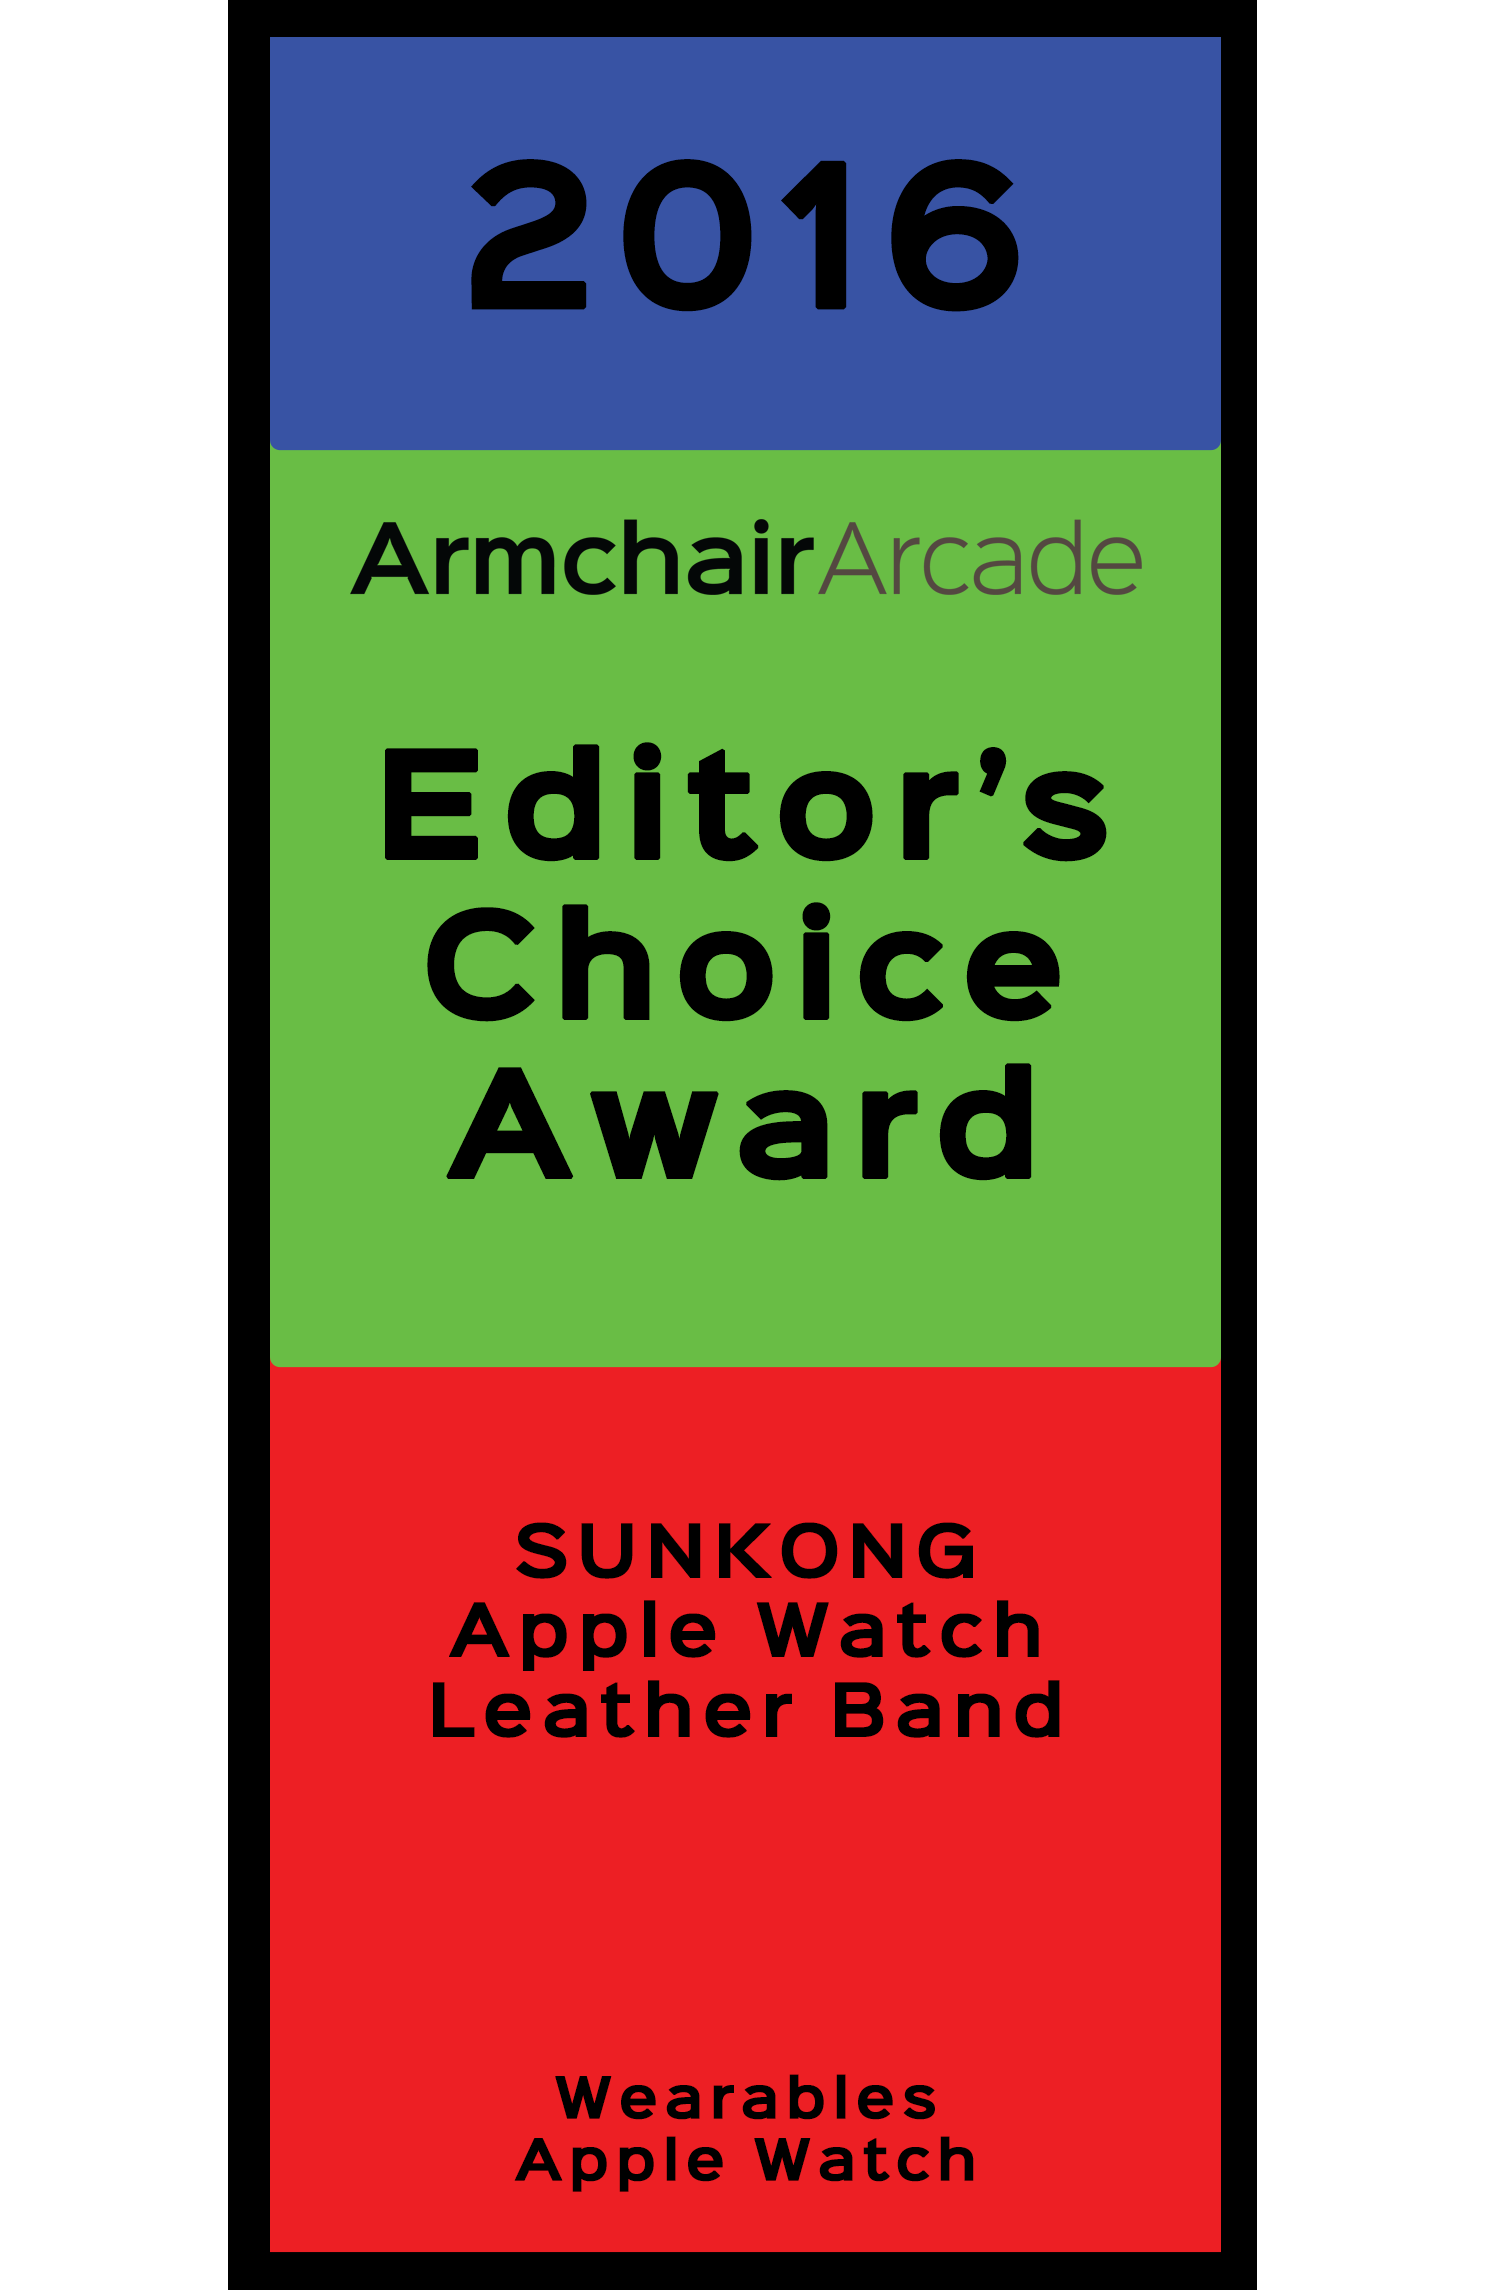 Armchair Arcade Editor's Choice Award 2016